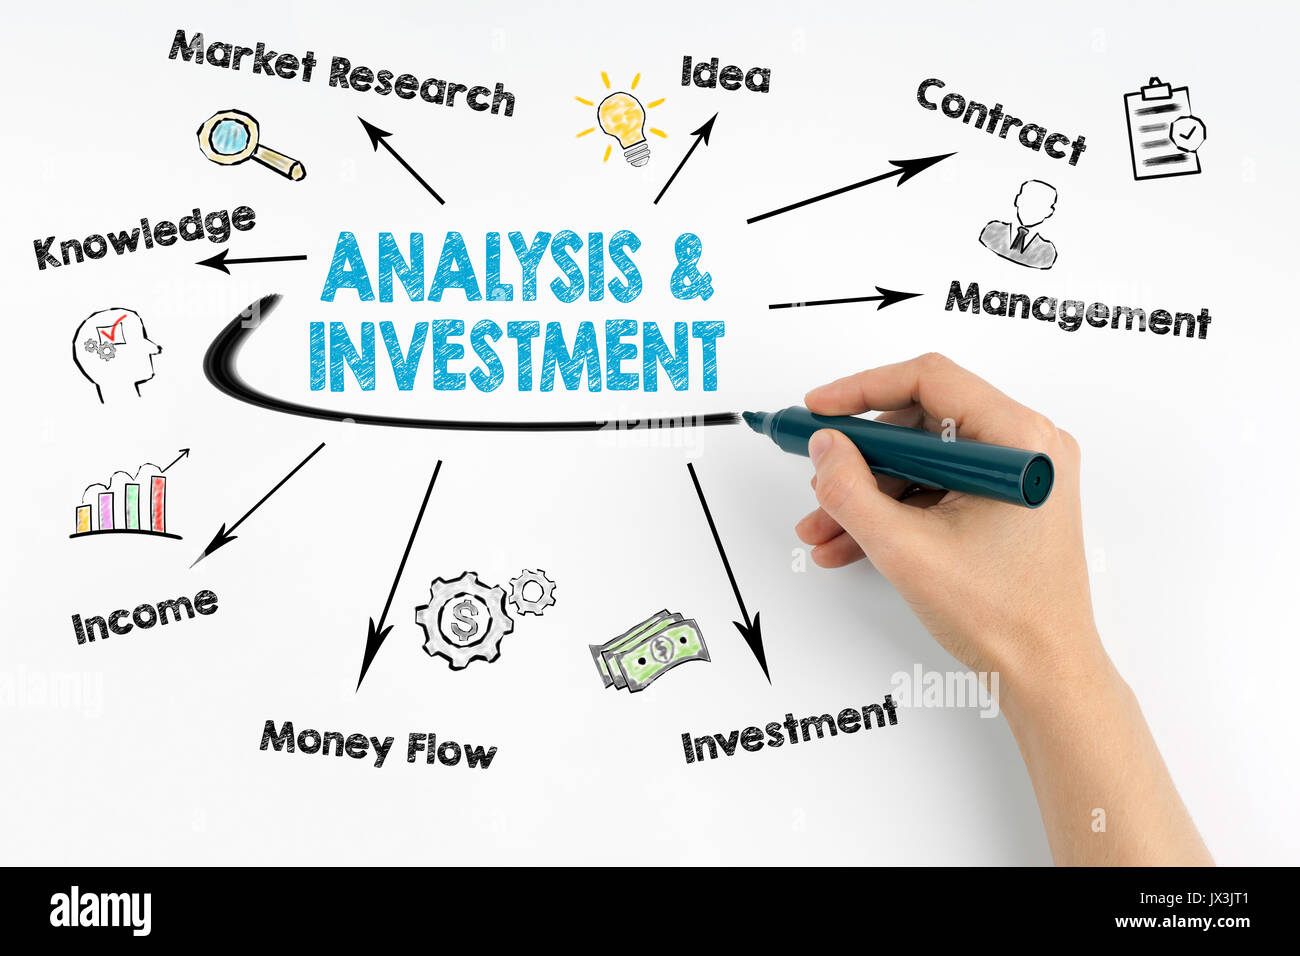 Analysis and Investment concept. Chart with keywords and icons. - Stock Image